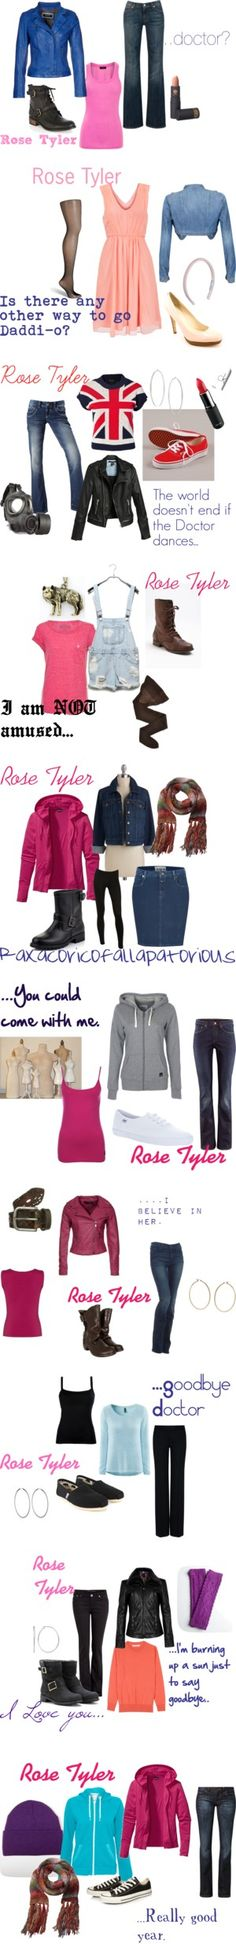 Rose Tyler Doctor who Doctor Who Outfits, Doctor Who Cosplay, Fandom Outfits, Nerd Fashion, Fandom Fashion, Character Inspired Outfits, Rose Tyler, Casual Cosplay, Geek Chic